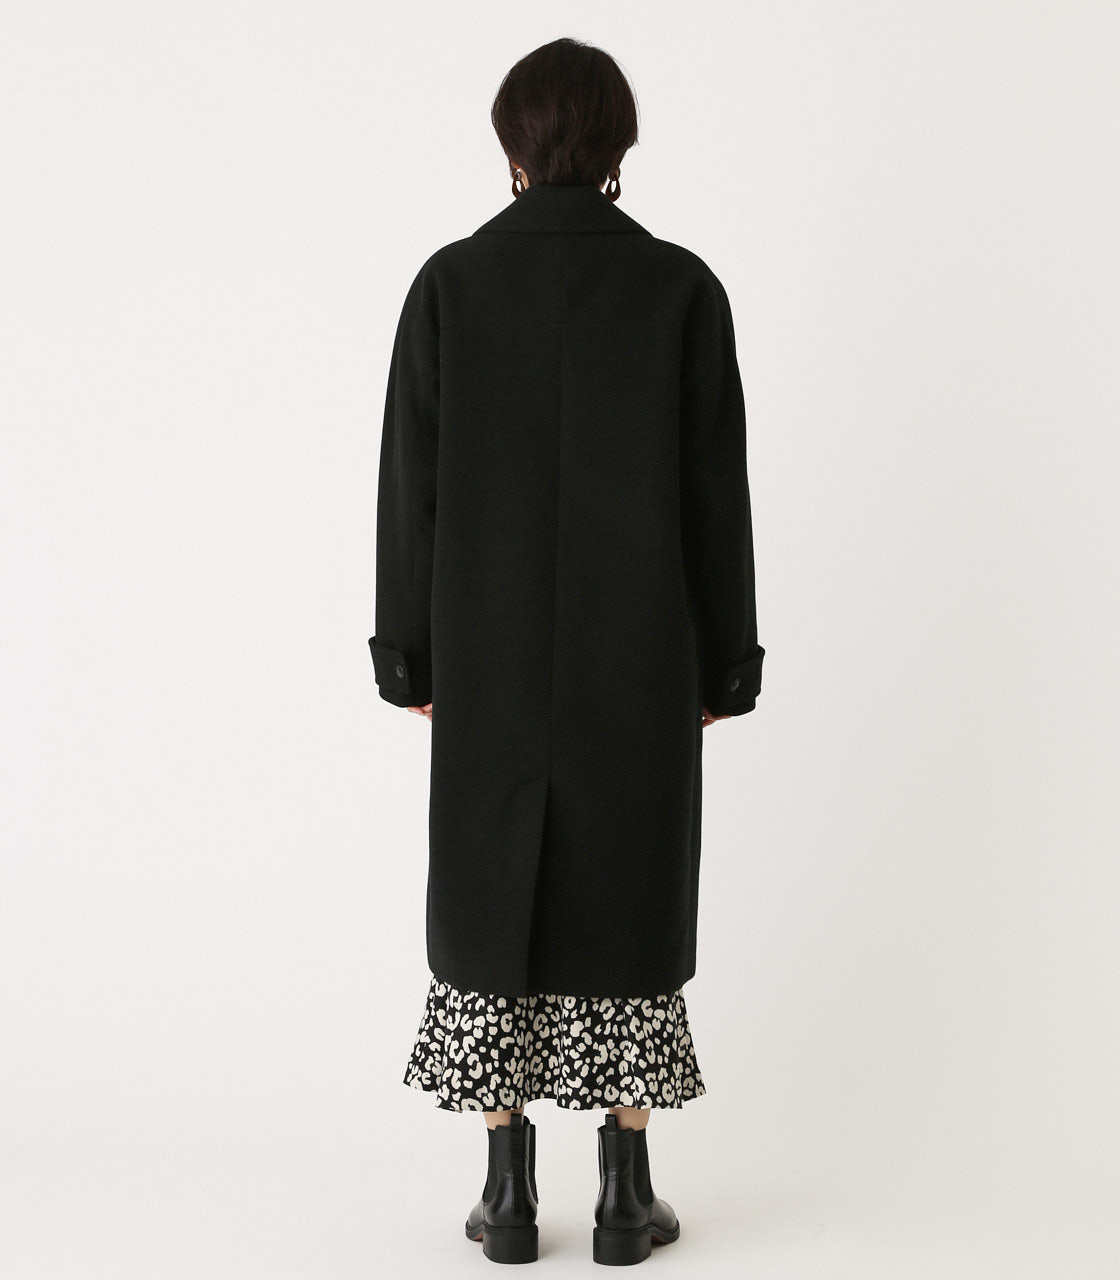 OVER LOOSE CHESTER COAT/オーバールーズチェスターコート 詳細画像 BLK 6